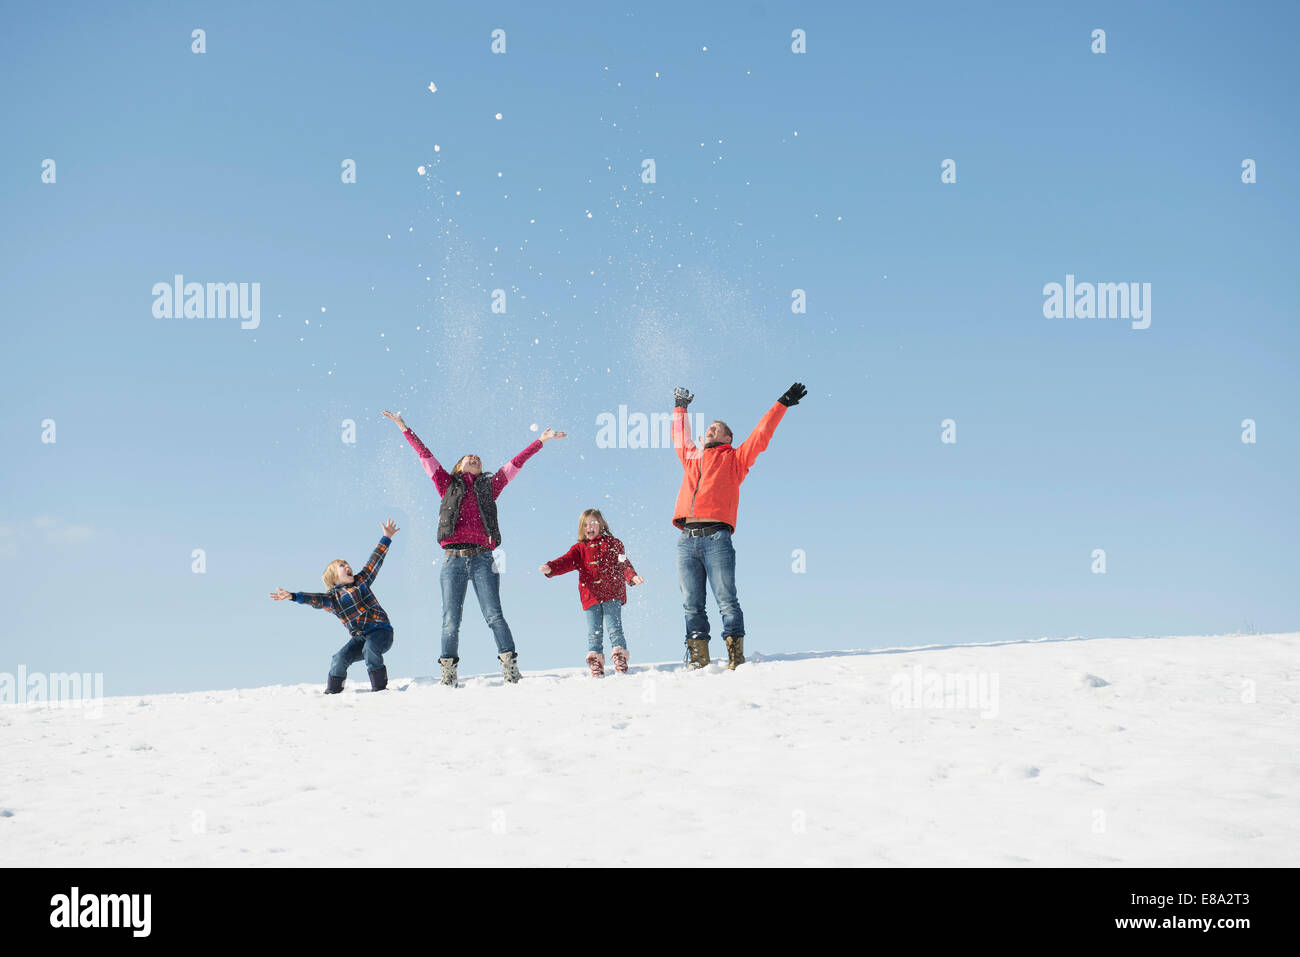 Family playing with snow in winter, Bavaria, Germany Stock Photo